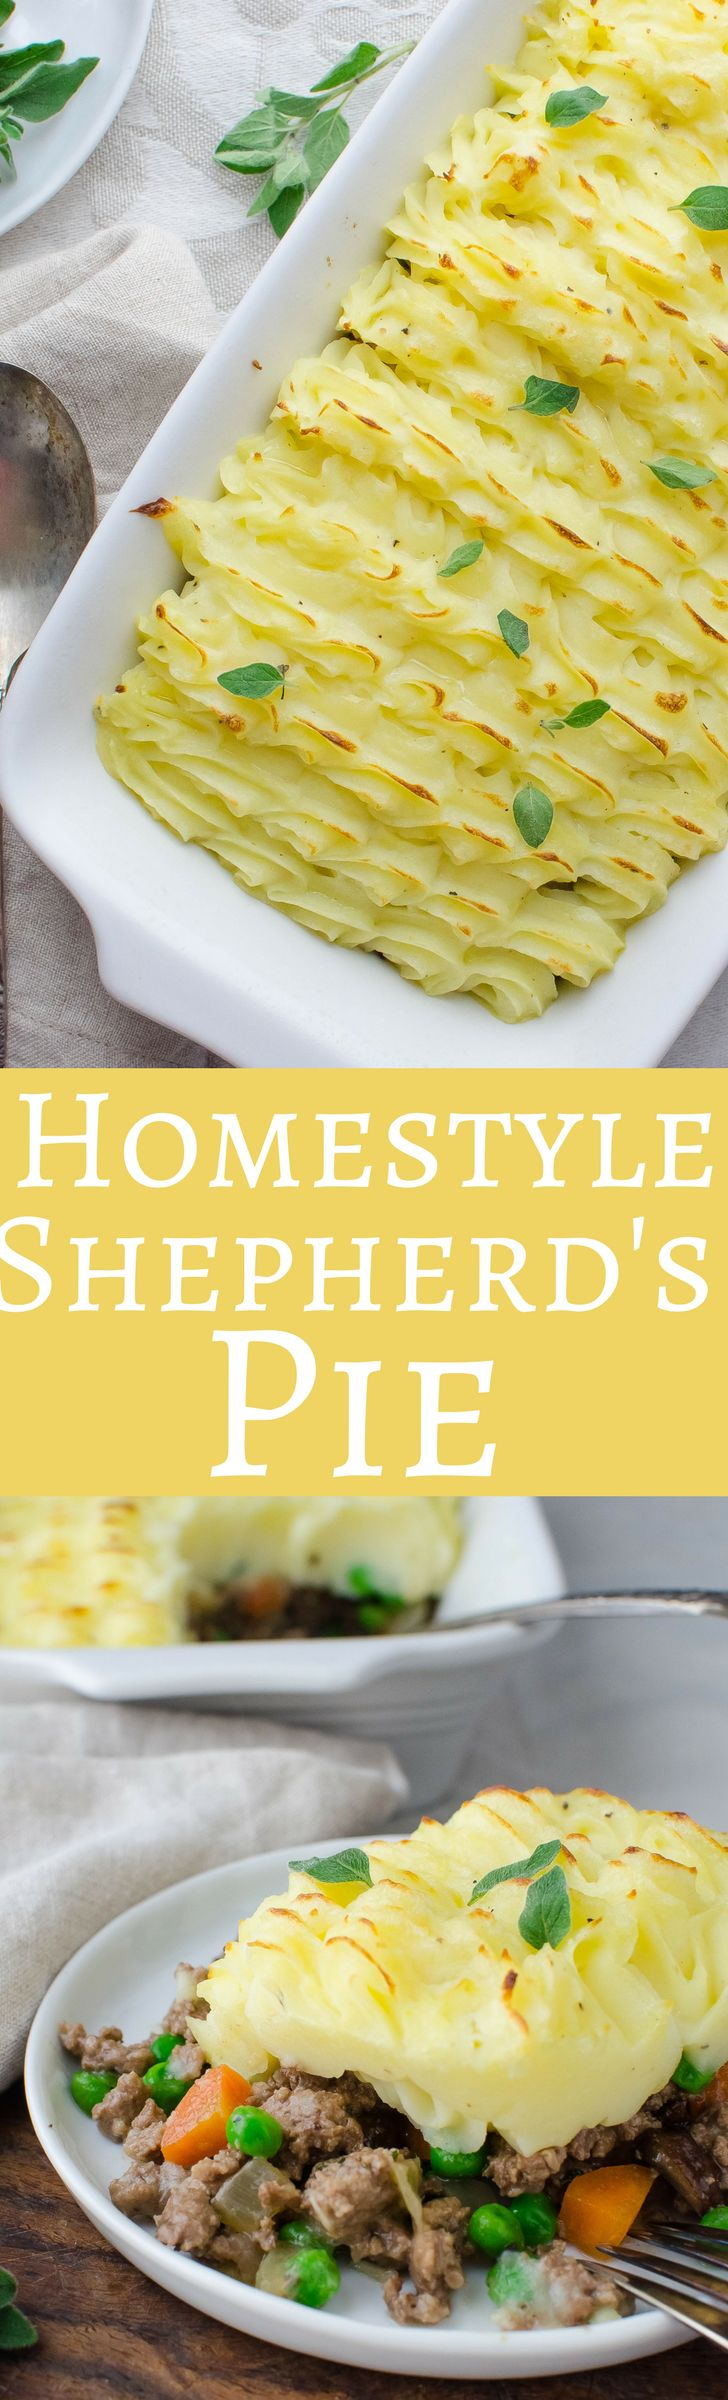 This classic recipe for Homestyle Shepherd's Pie is the ultimate comfort food with mashed potatoes, savory beef filling and creamy gravy!